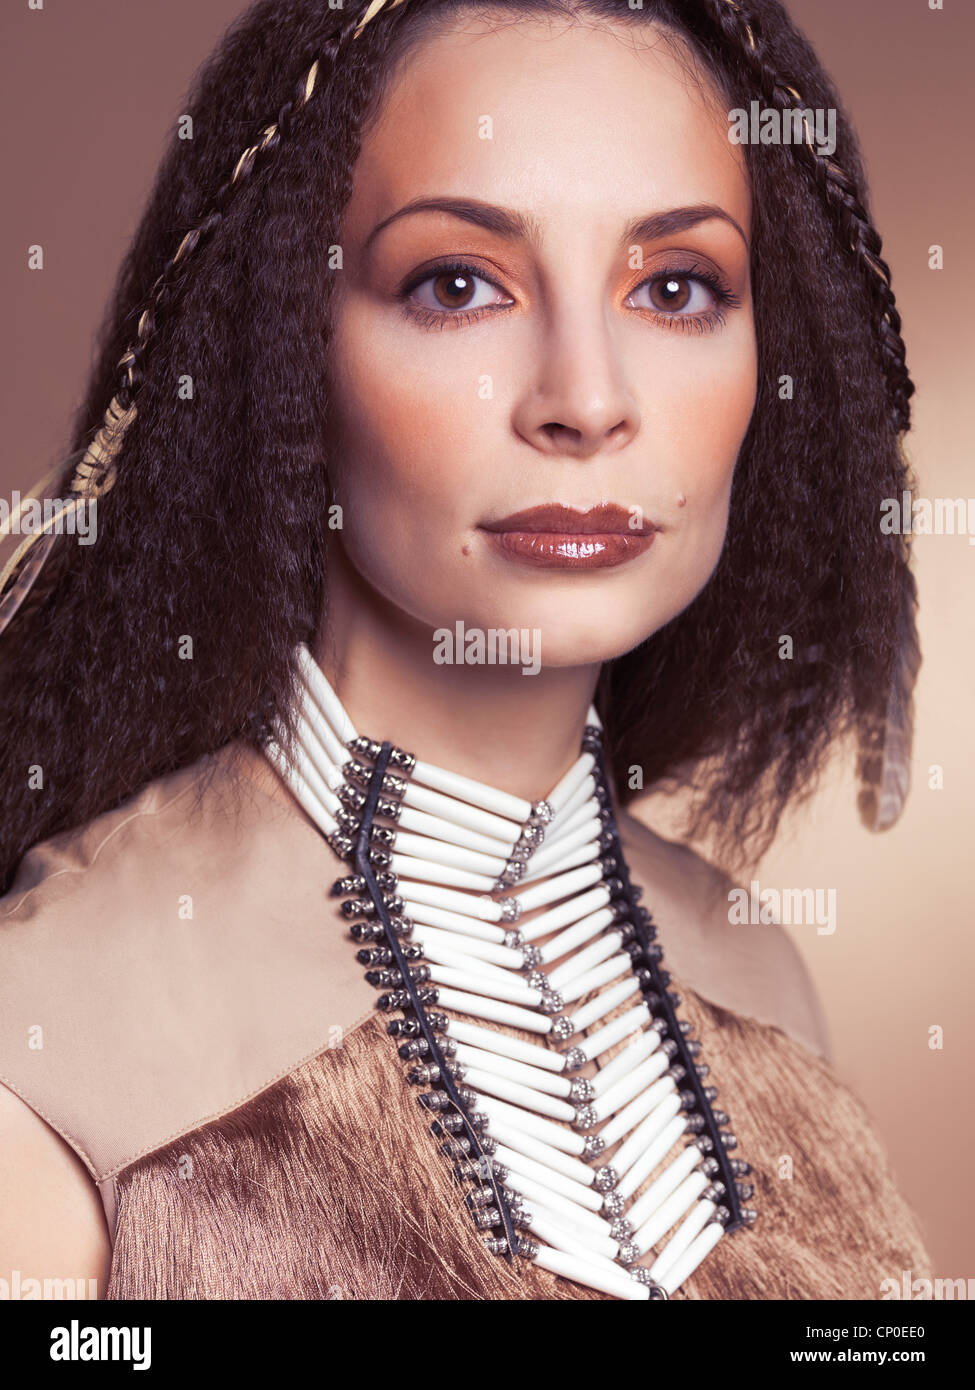 Artistic beauty portrait of a beautiful woman wearing aboriginal native necklace and accessories - Stock Image